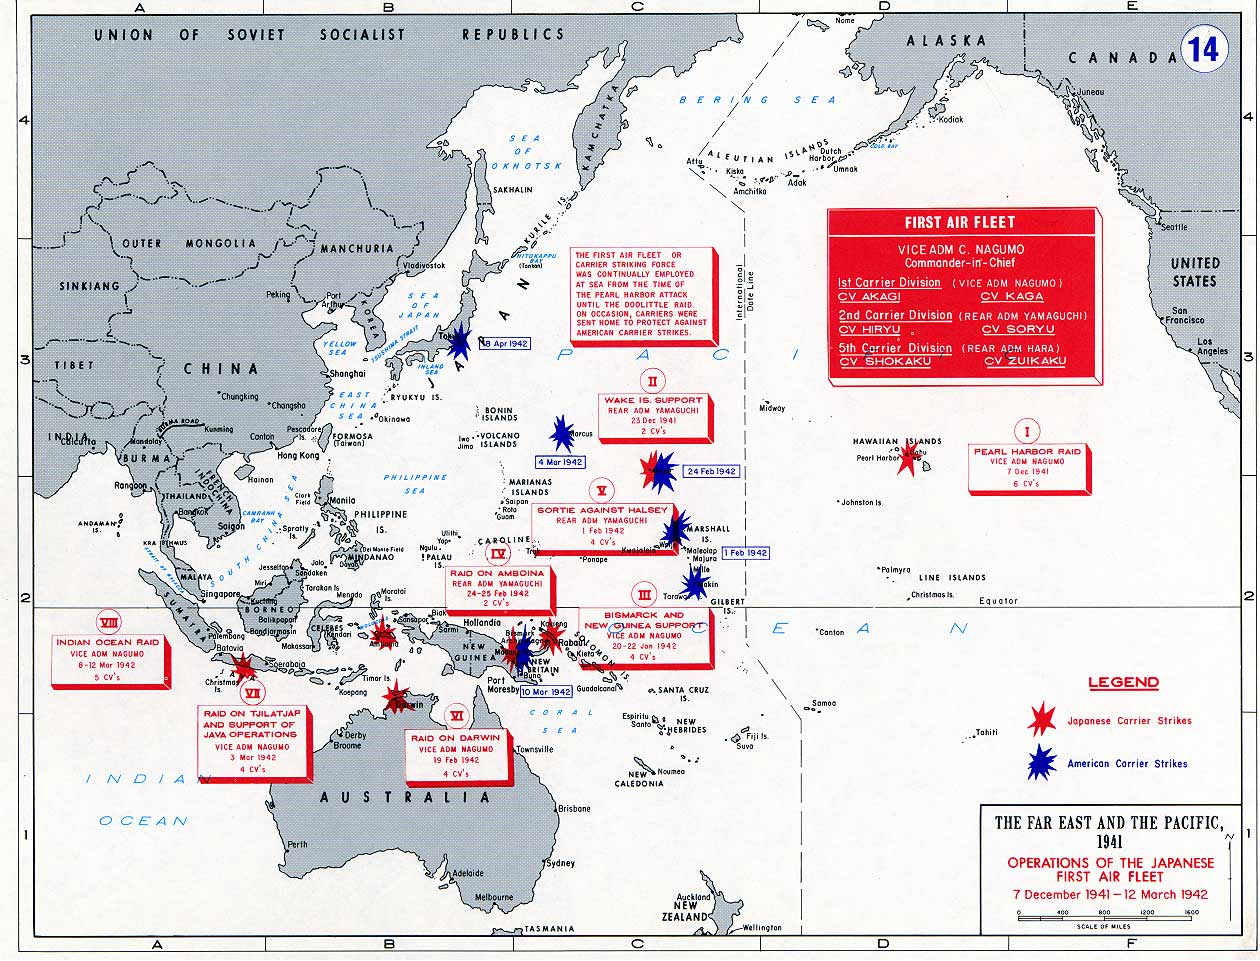 Battle map showing the area of the Far East and Pacific 1941 0B